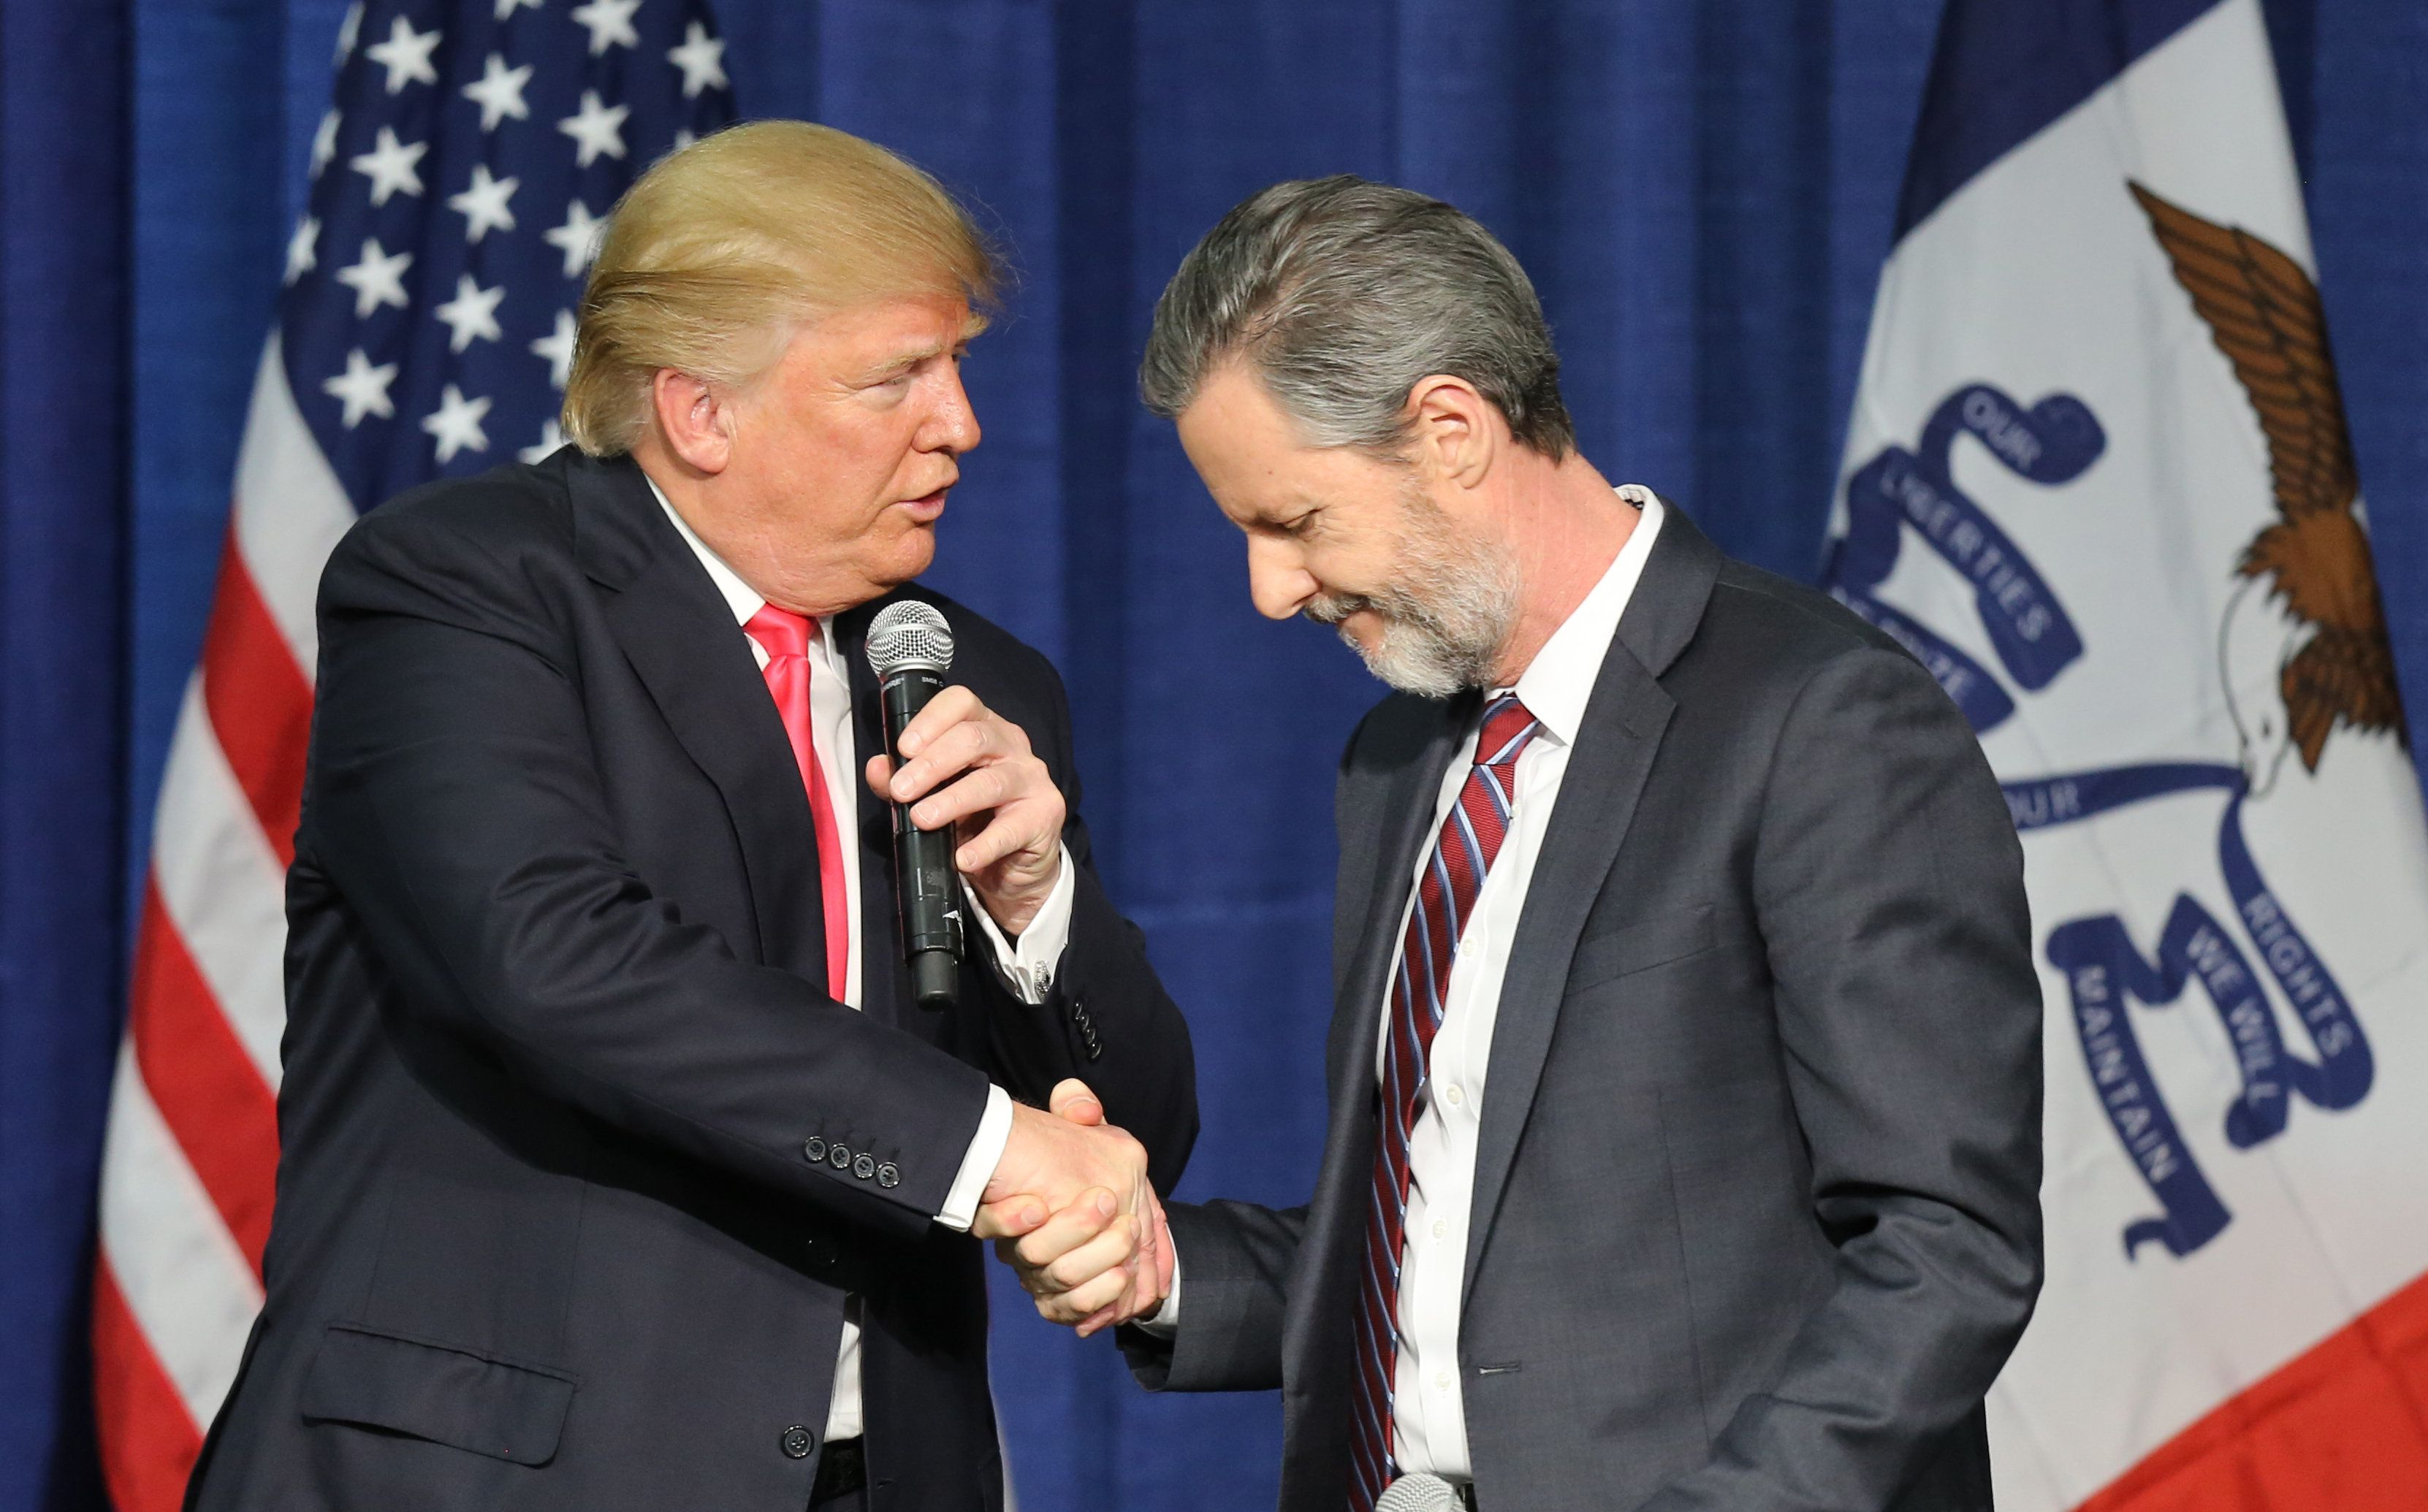 U.S. Republican presidential candidate Donald Trump (L) shakes hands with Jerry Falwell Jr. at a campaign rally in Council Bluffs, Iowa, January 31, 2016. REUTERS/Scott Morgan